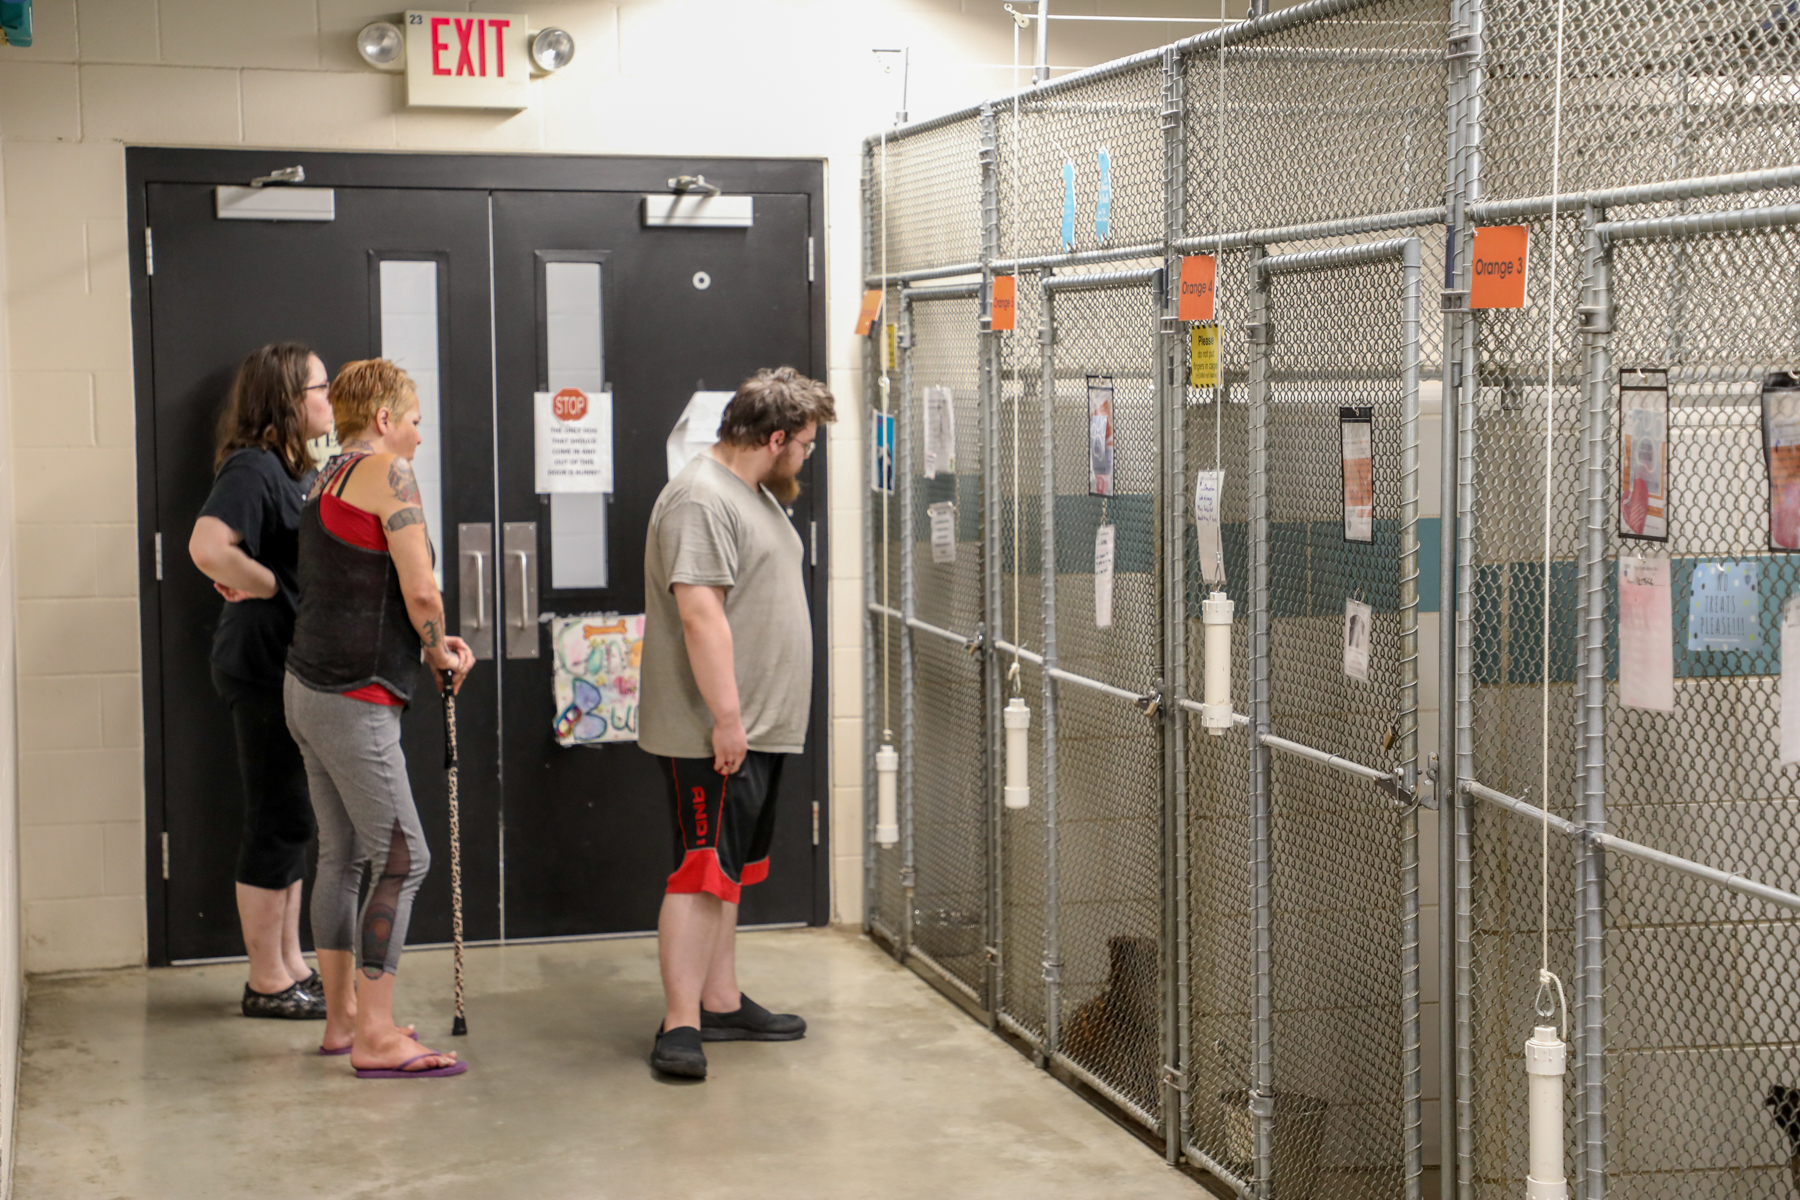 Many fur babies found their forever homes at the Clear the Shelters event on Aug. 17, 2019. (Michael Buck/WOOD TV8)